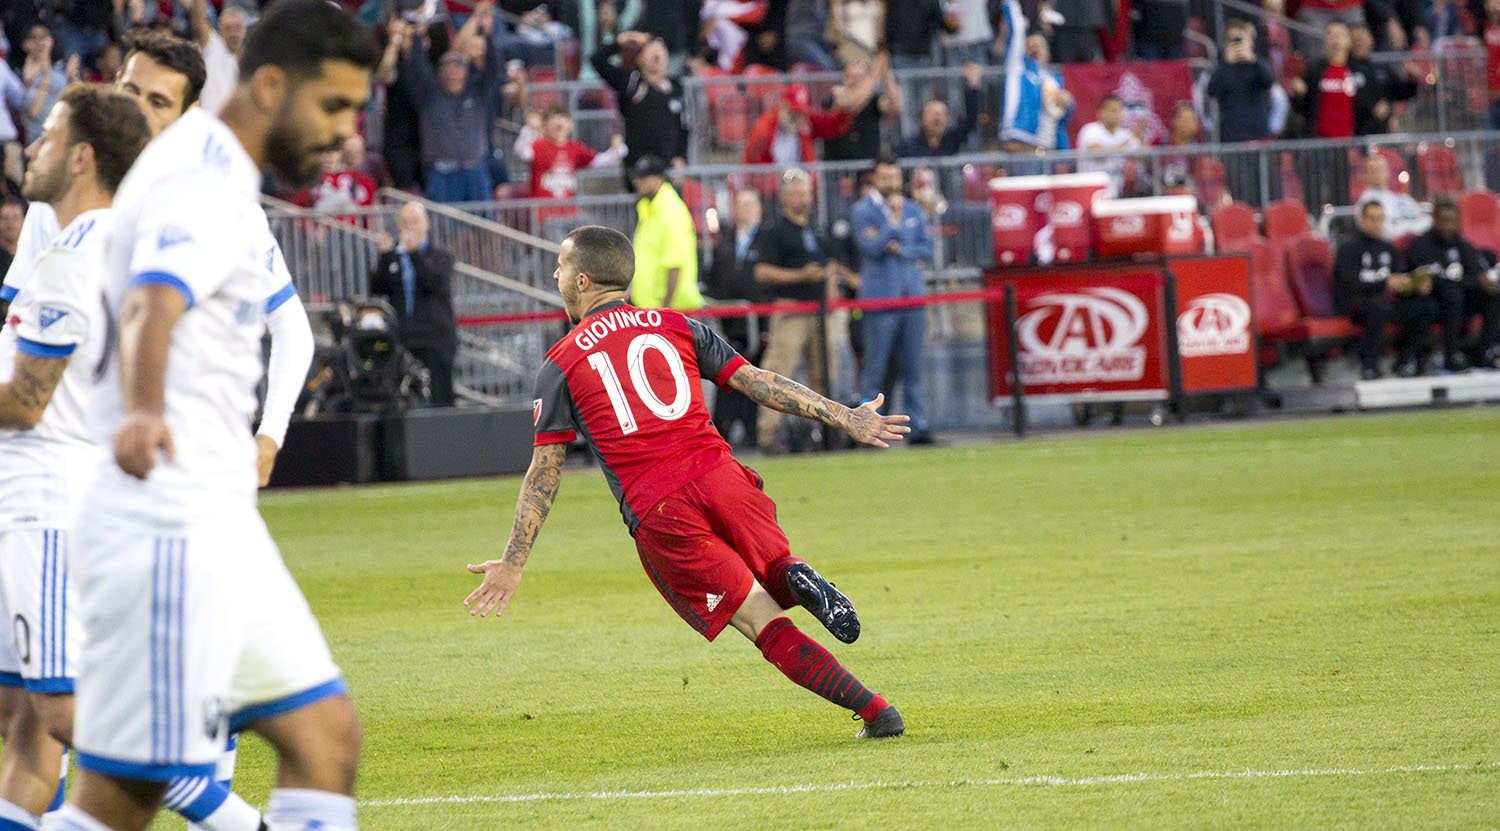 Giovinco celebrates his goal against the Montreal Impact in 2017.Image by Dennis Marciniak of denMAR Media.